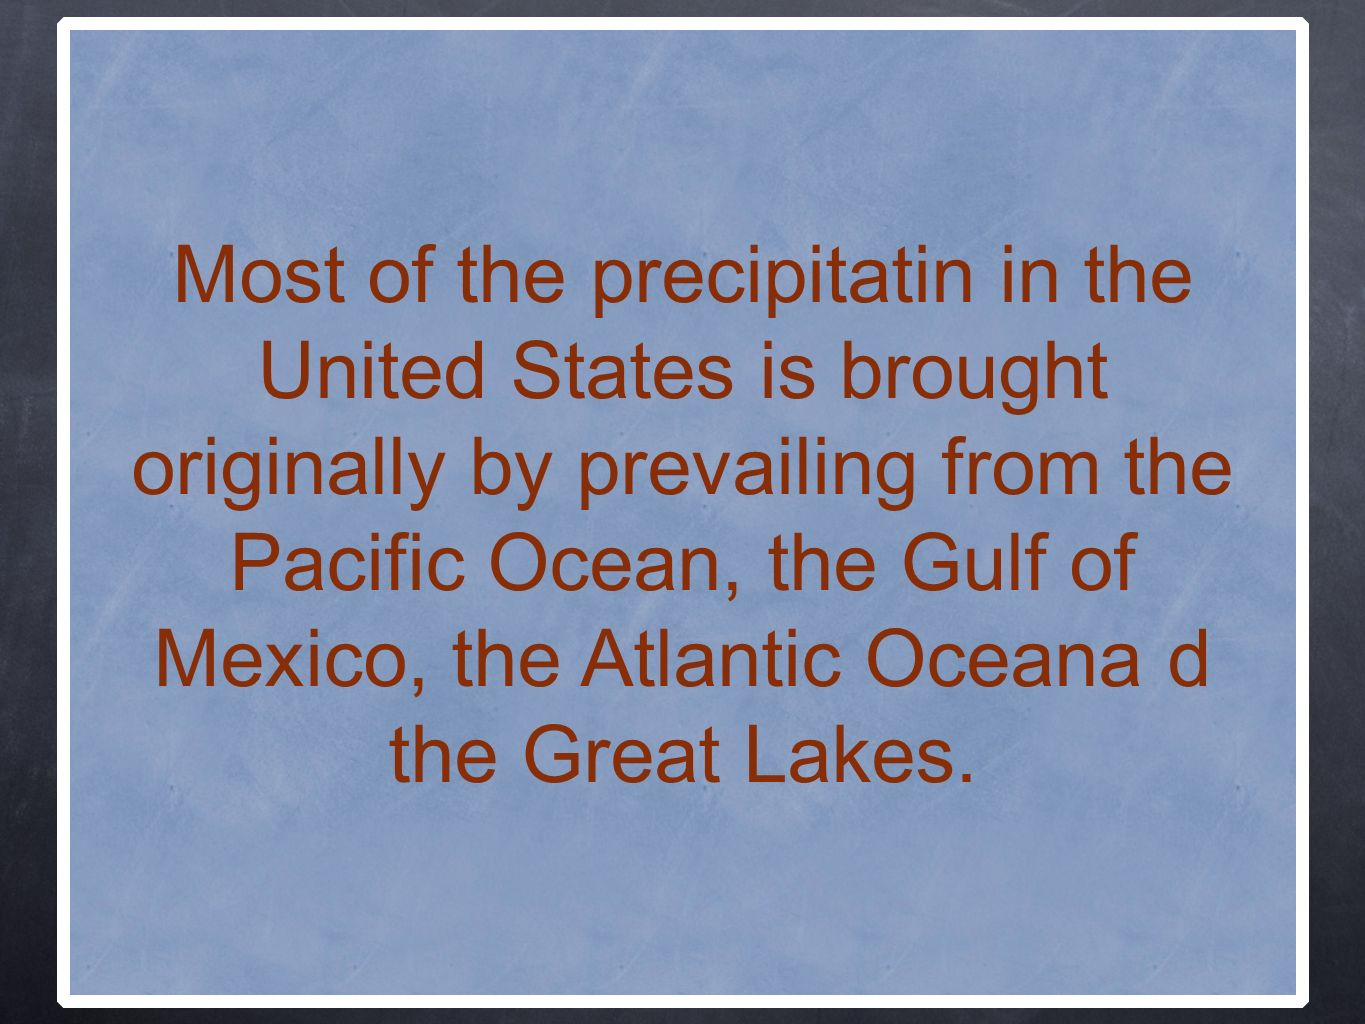 Most of the precipitatin in the United States is brought originally by prevailing from the Pacific Ocean, the Gulf of Mexico, the Atlantic Oceana d the Great Lakes.